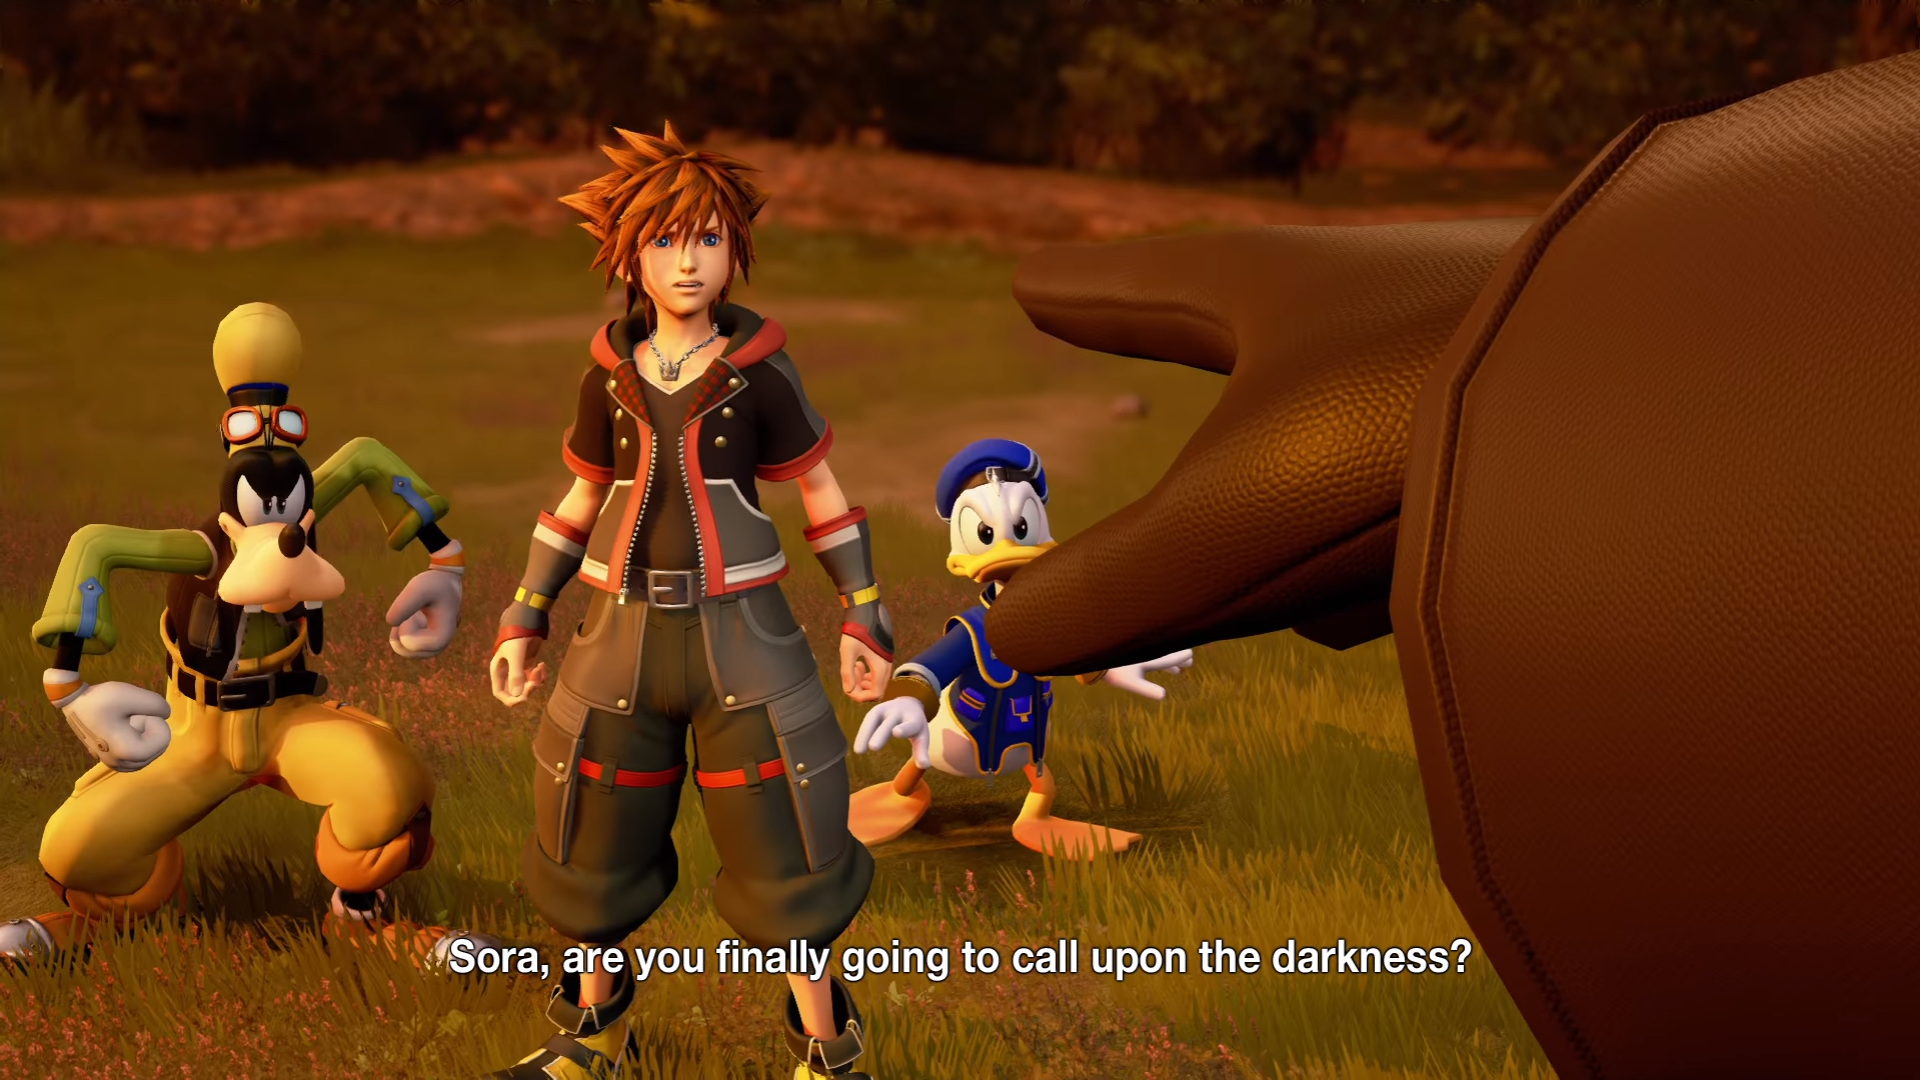 E3 2017: New Kingdom Hearts 3 Orchestra Trailer Brings All The Hype!